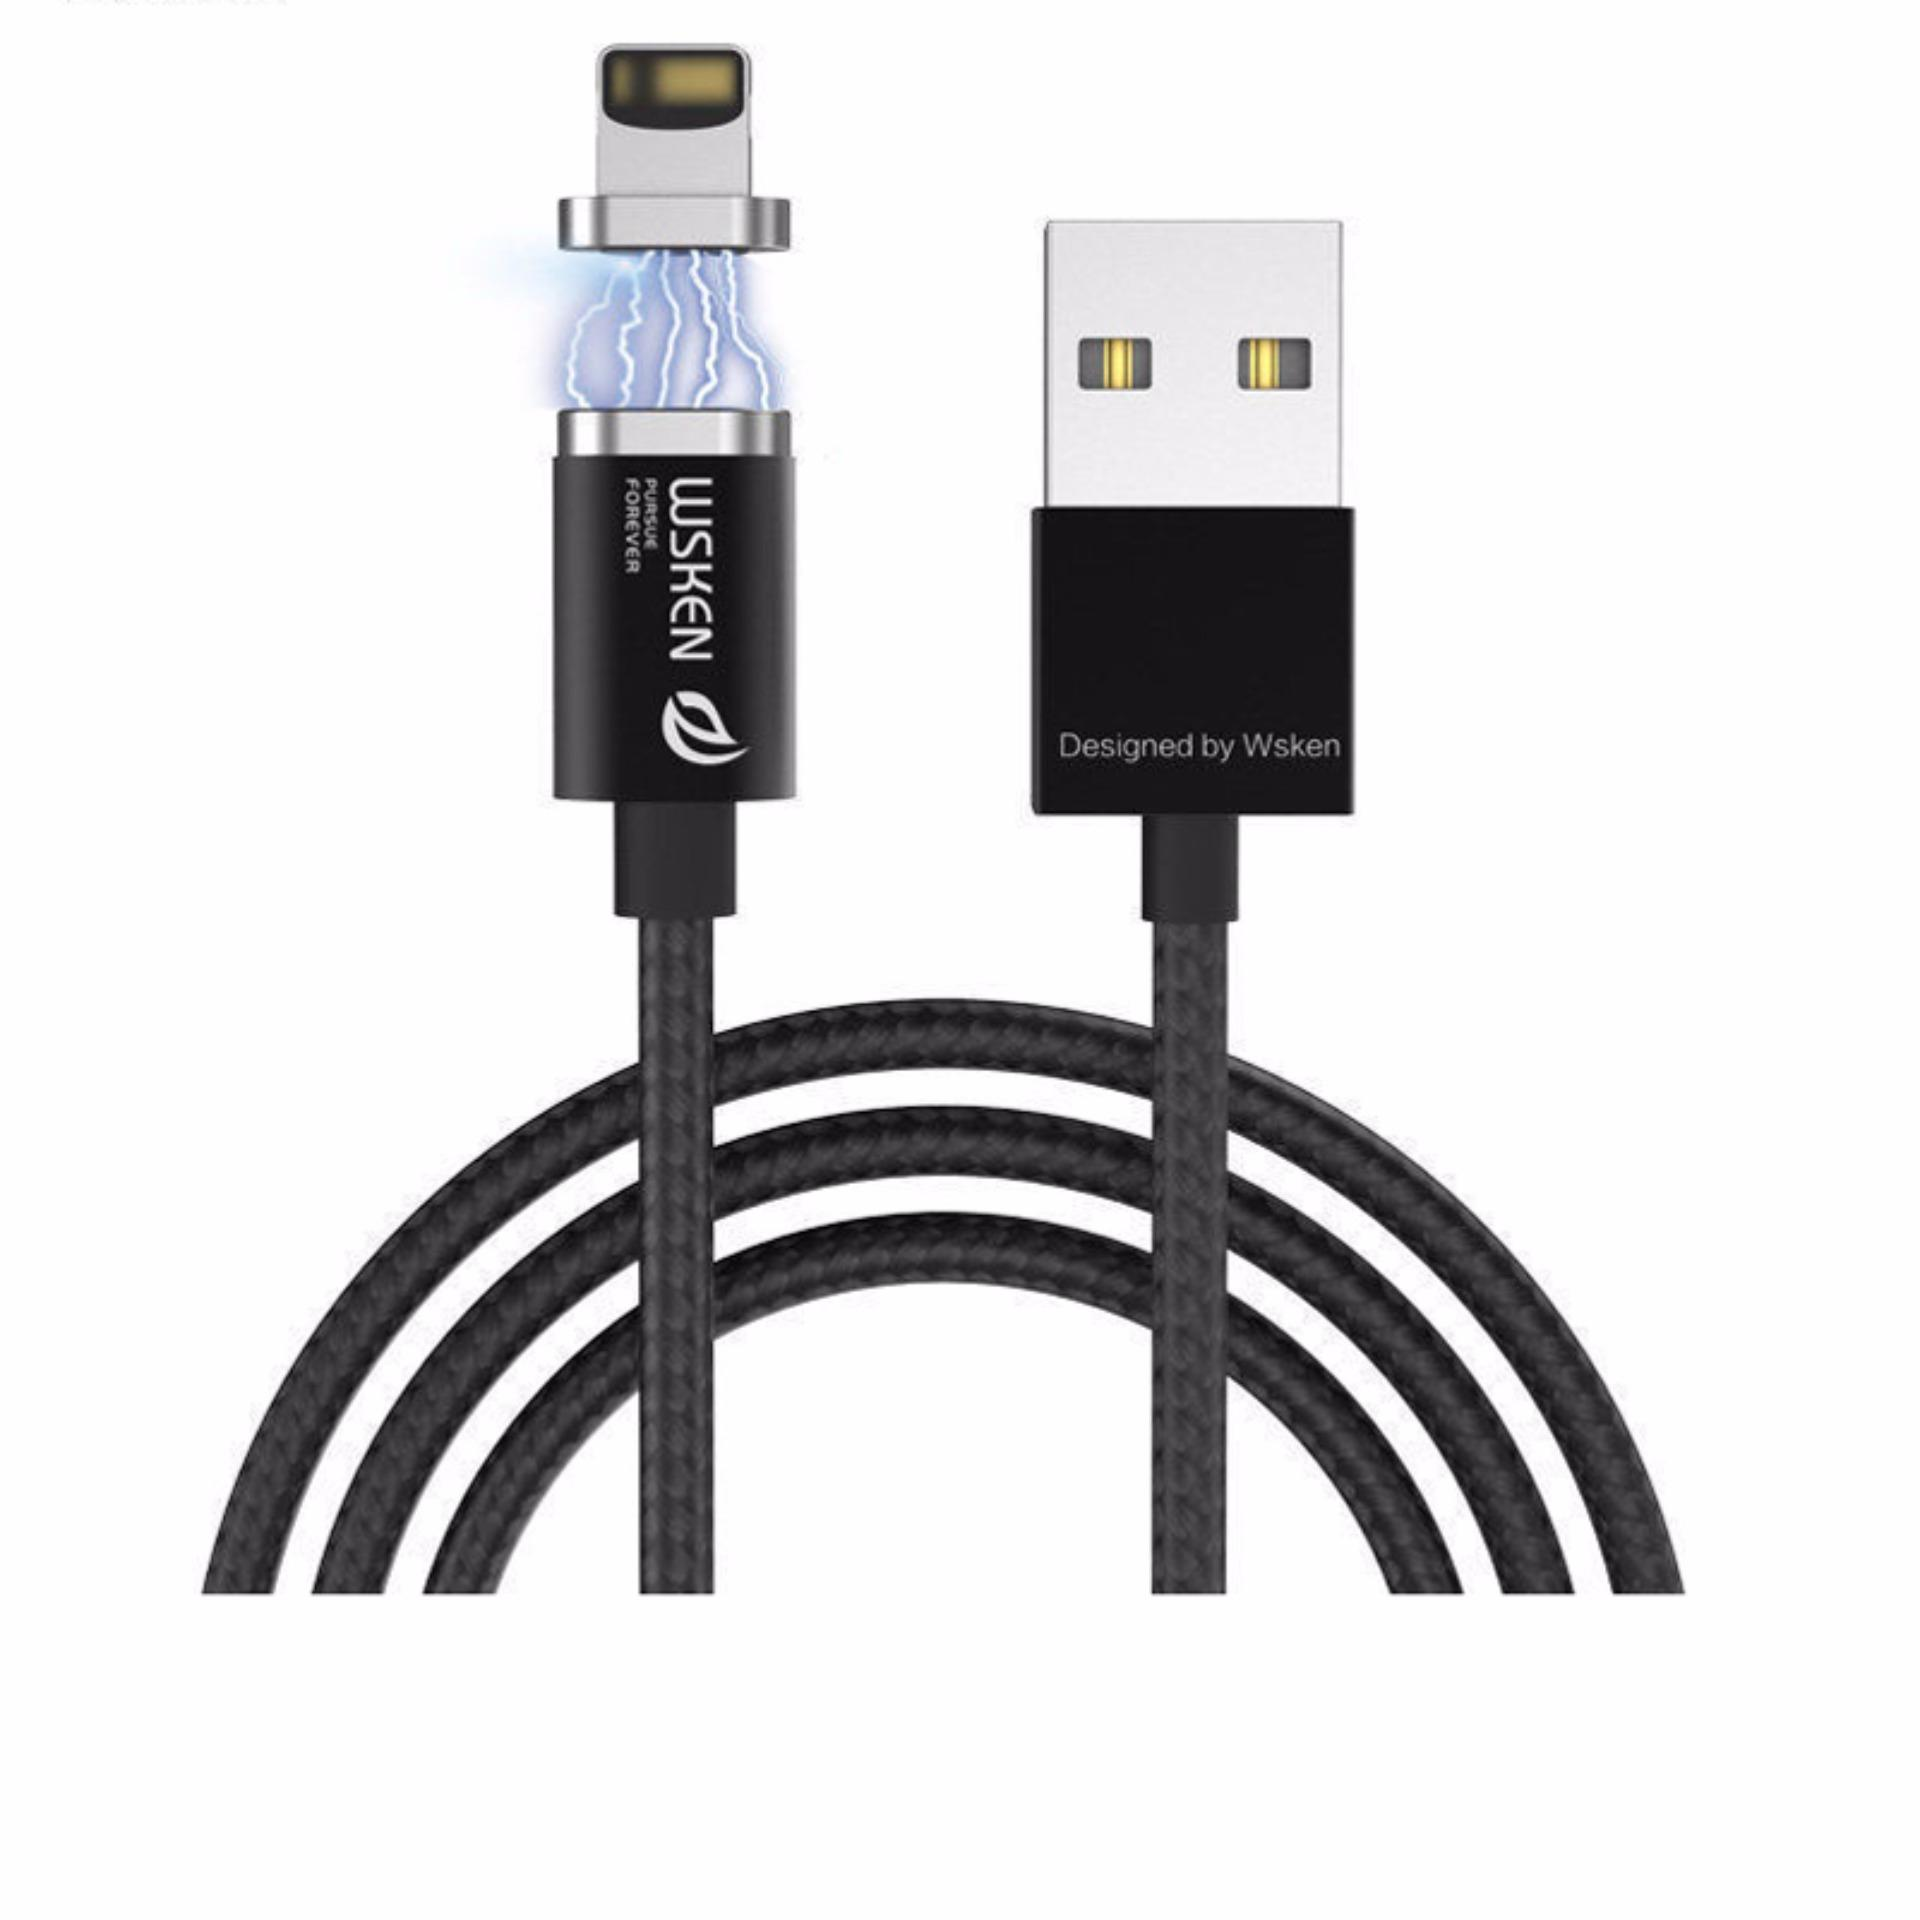 Beli Wsken X Cable Mini 2 Micro Usb And Lightning Magnetic Charging Cable Blackt Online Jawa Barat